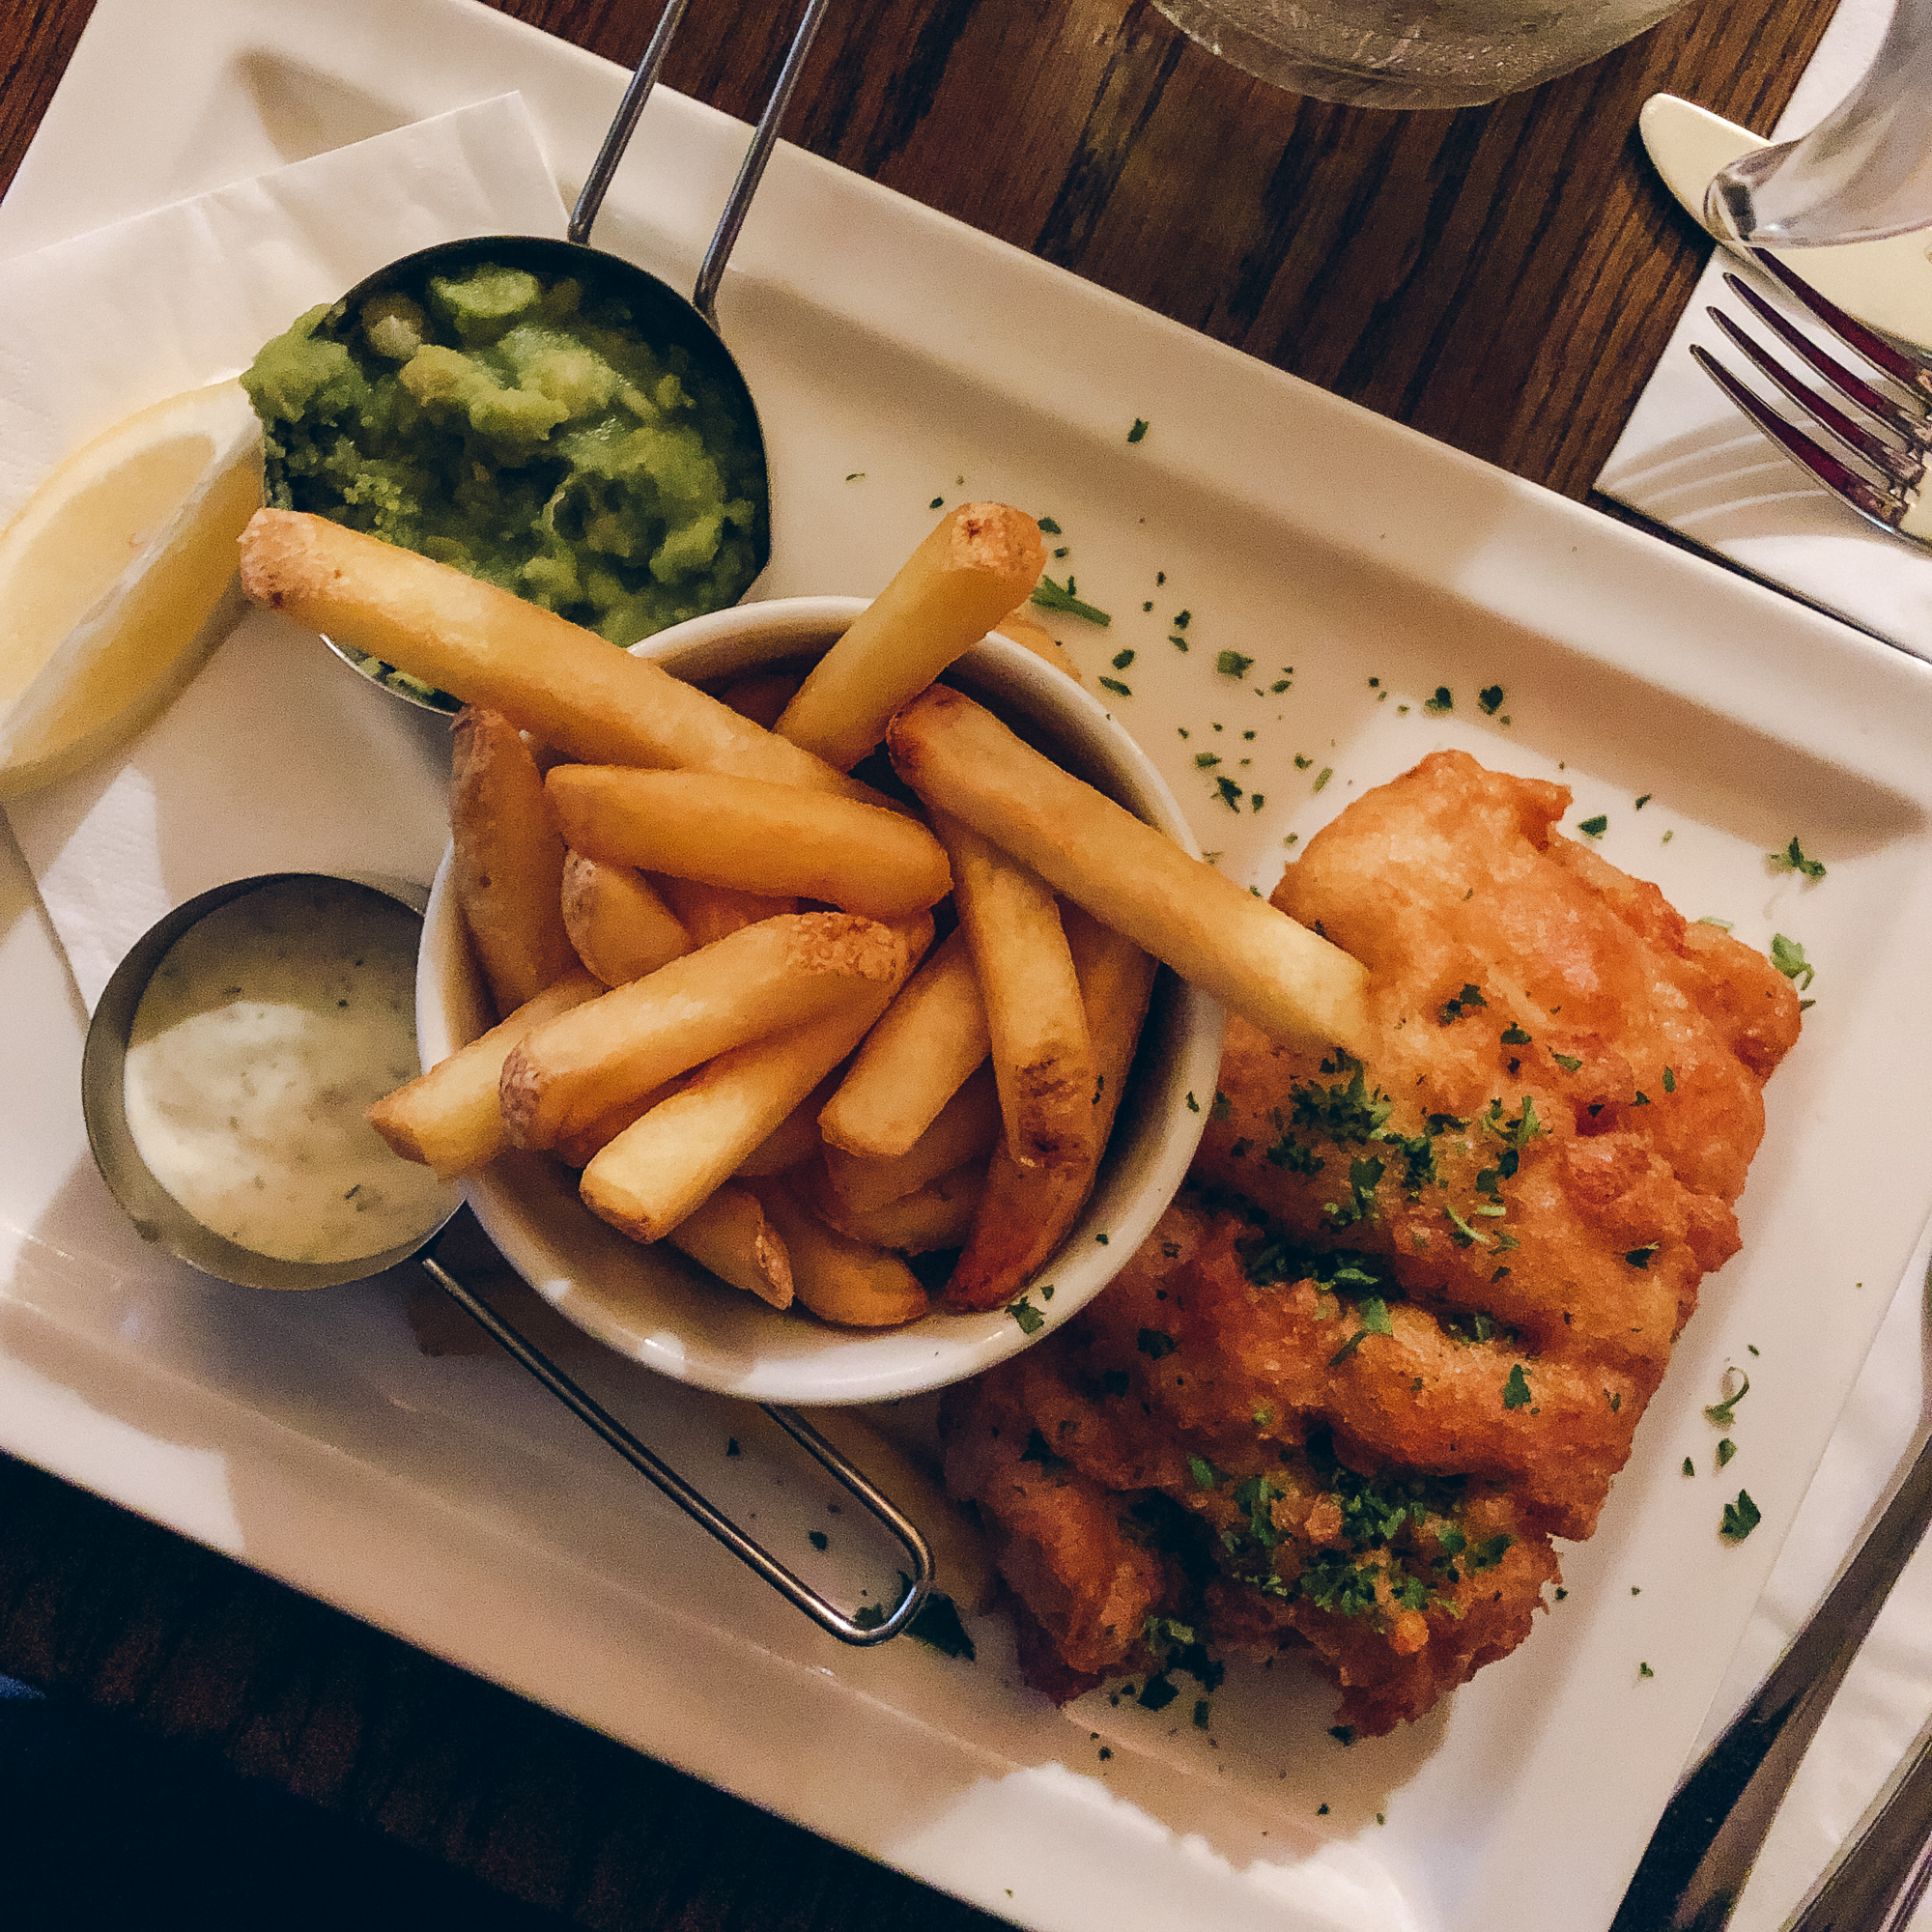 Fish and chips from the Abbey Tavern